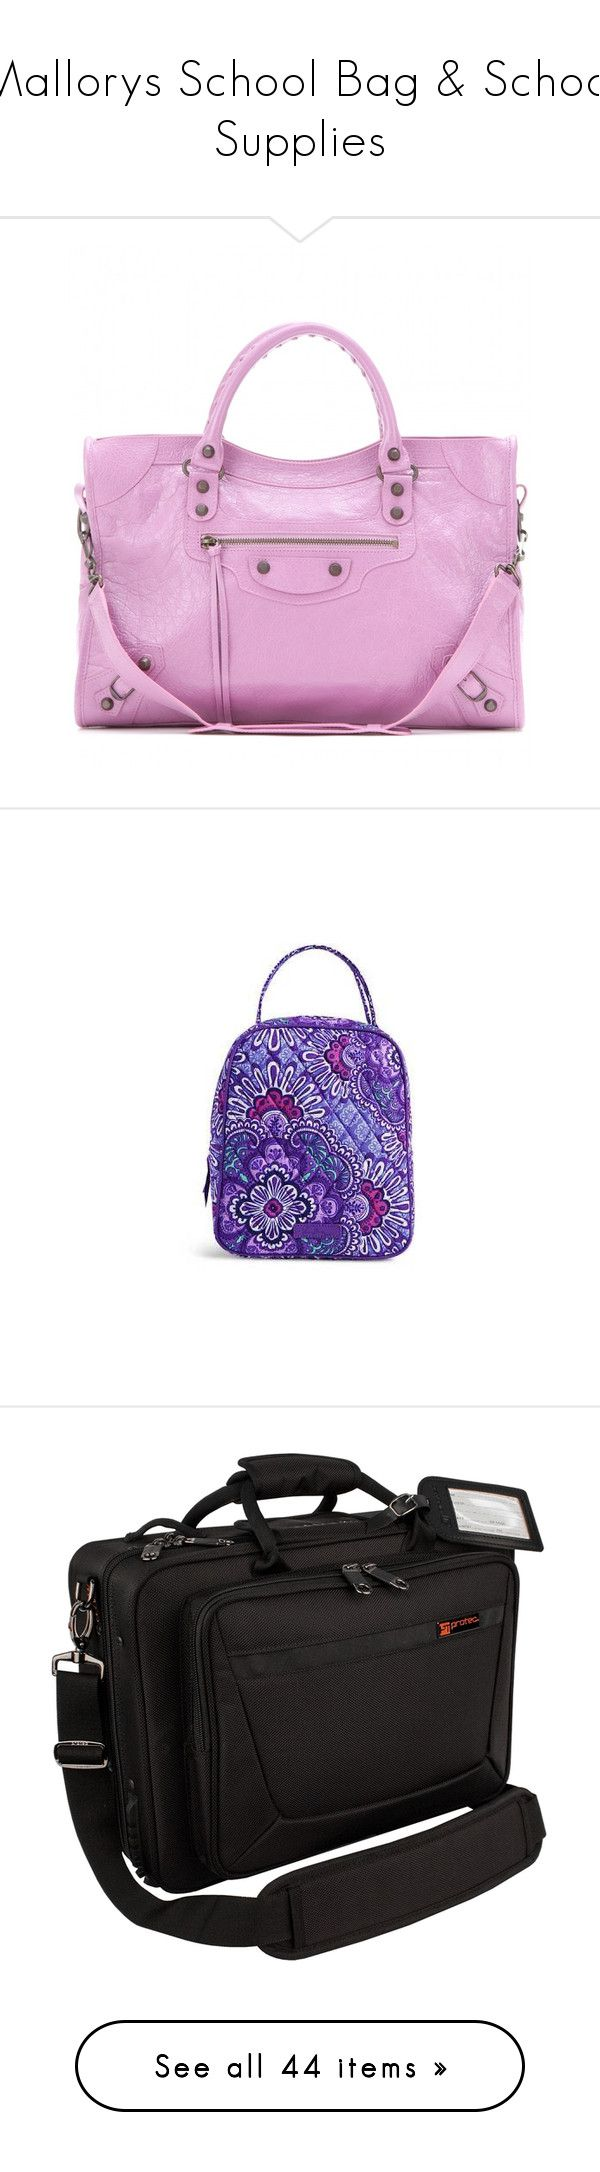 """""""Mallorys School Bag & School Supplies"""" by hiimmichelle ❤ liked on Polyvore featuring bags, handbags, tote bags, purple, leather handbags, purple leather handbag, purple tote bags, pink tote bags, handbags totes and home"""